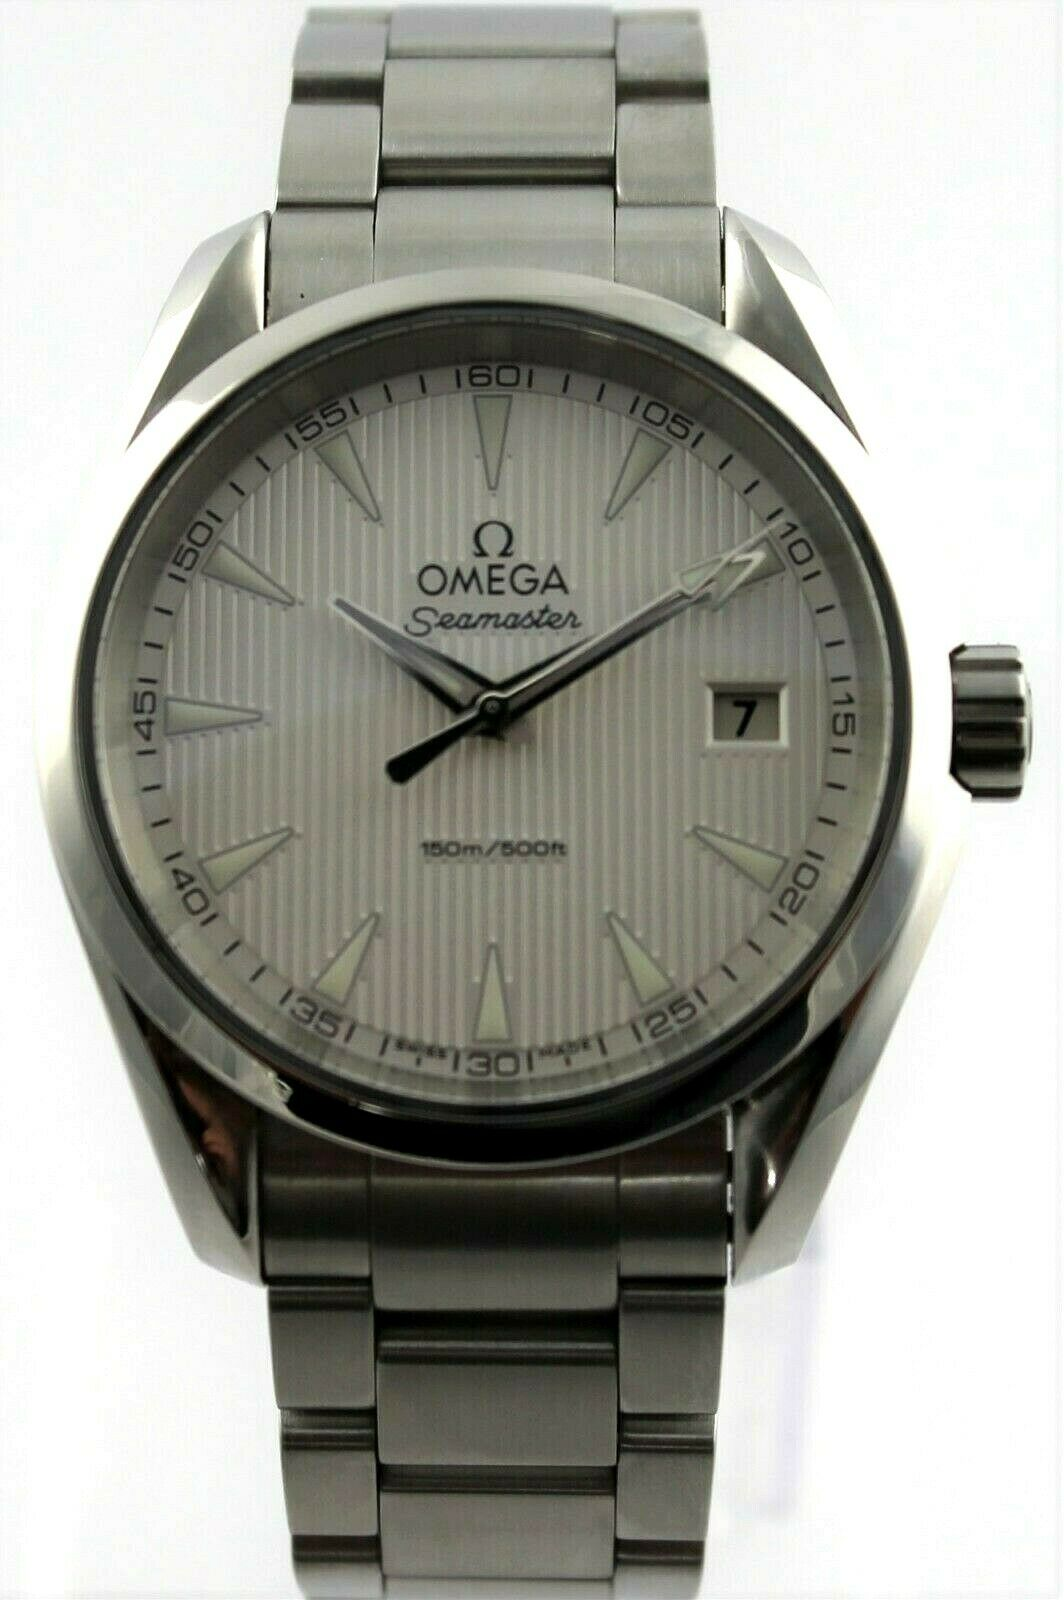 OMEGA SEAMASTER AQUA TERRA 231.10.39.60.02.001  SILVER SWISS QUARTZ MENS WATCH